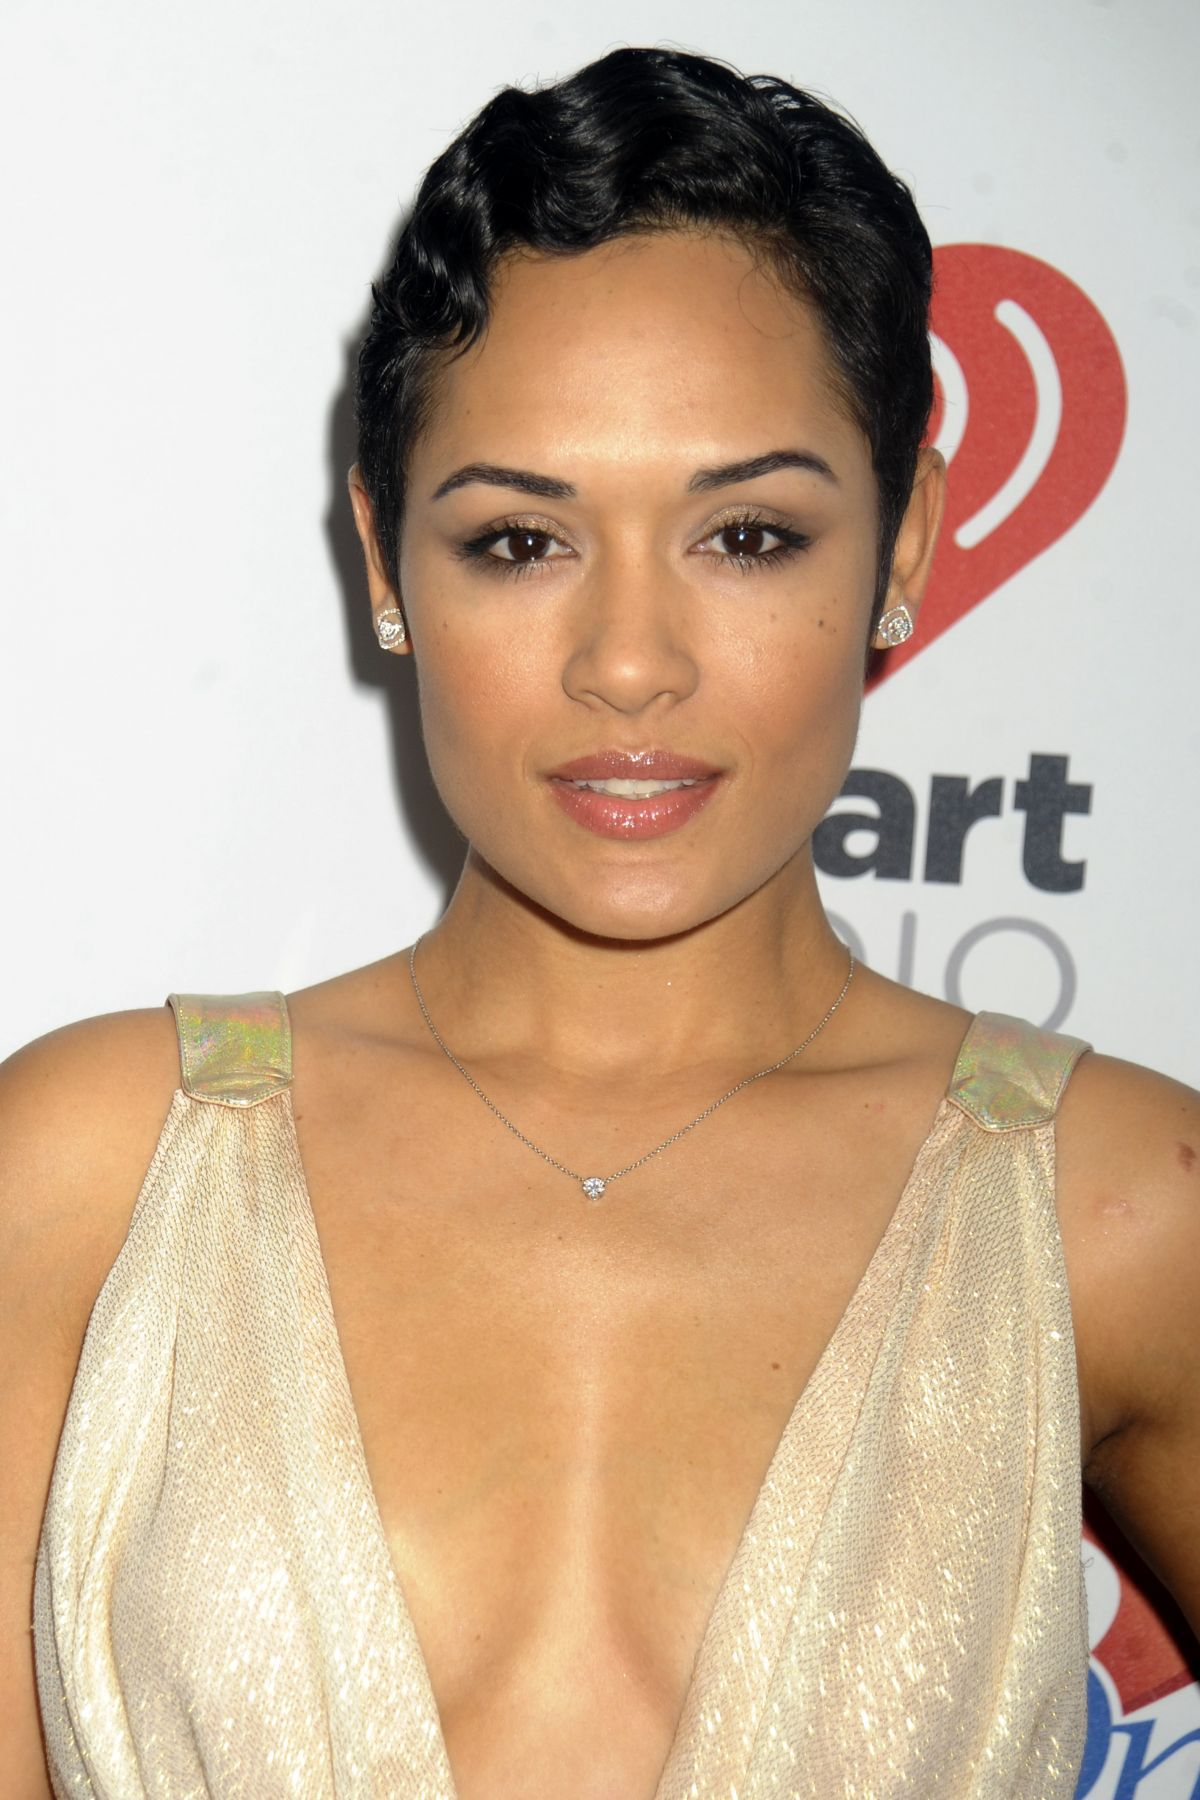 Grace Byers naked (16 foto and video), Pussy, Paparazzi, Twitter, lingerie 2017